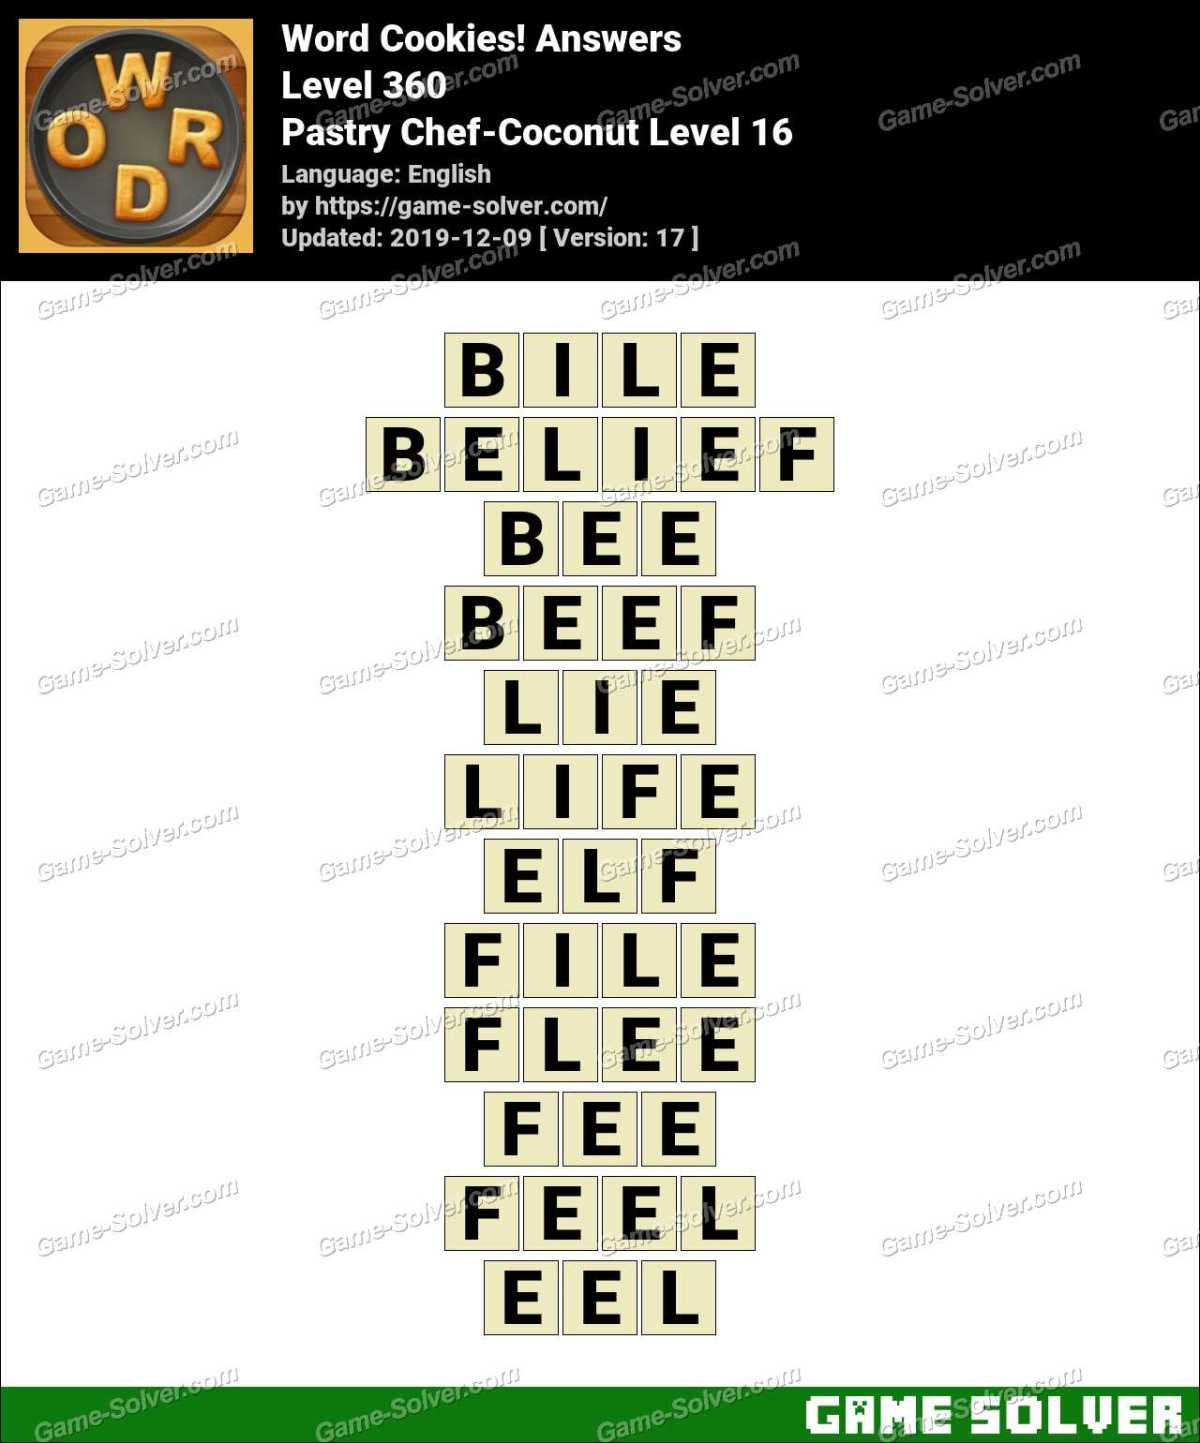 Word Cookies Pastry Chef-Coconut Level 16 Answers